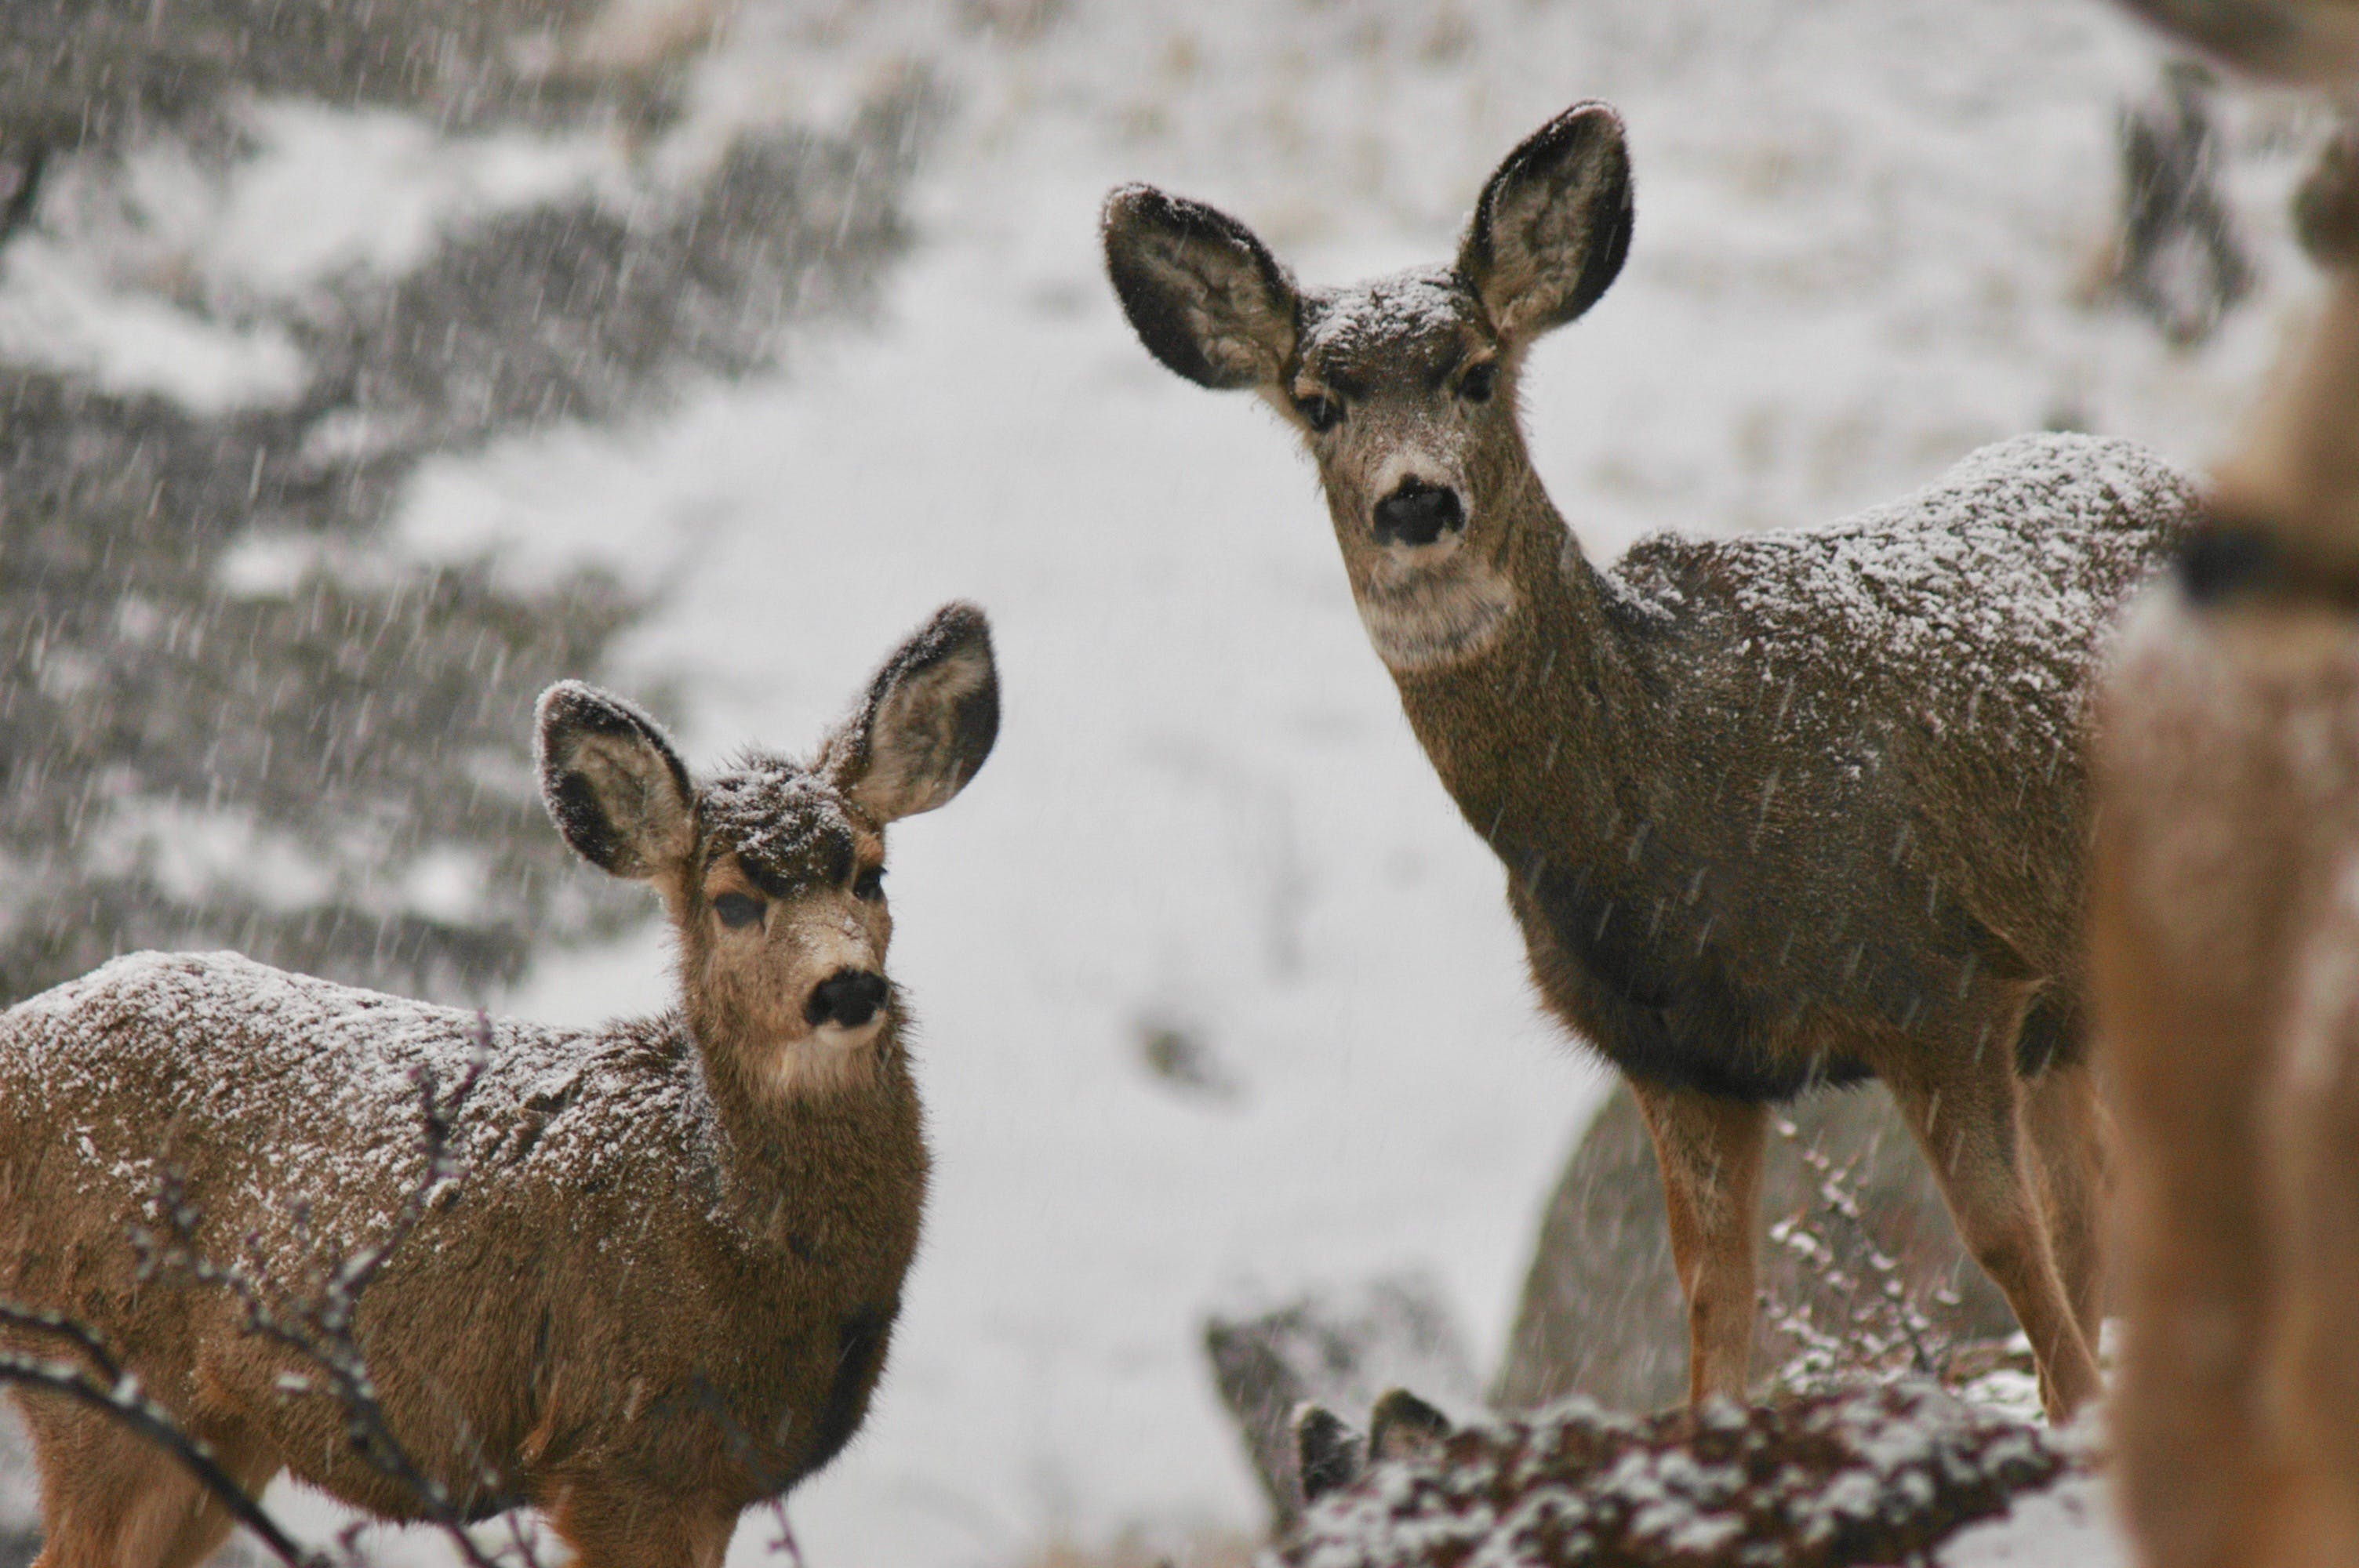 Two Deers in Snowy Field